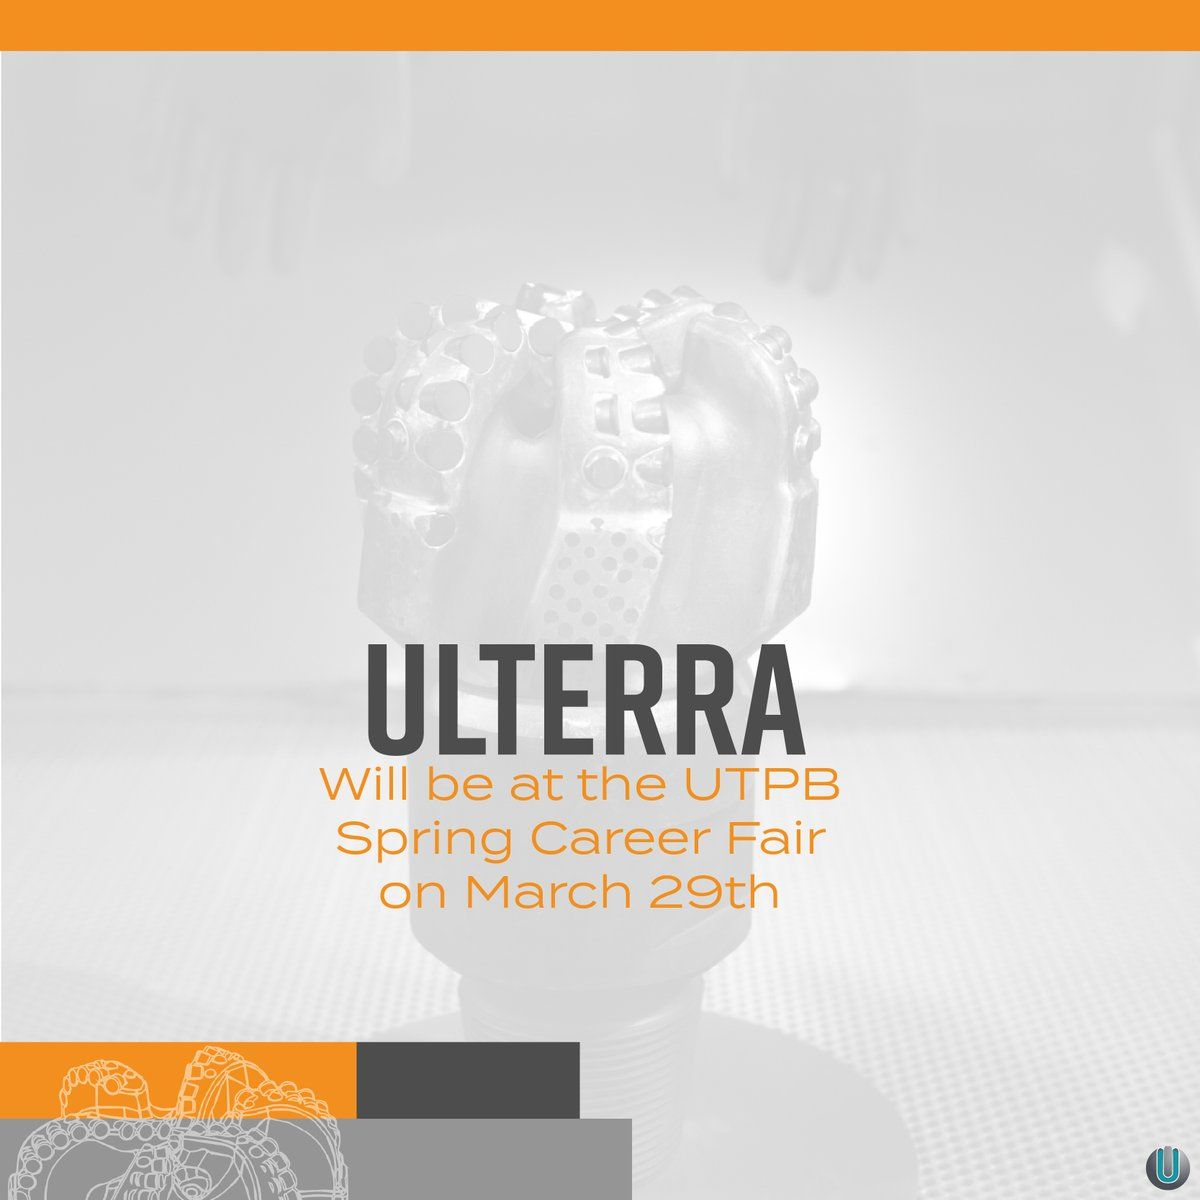 Stop by Ulterra's booth at the utpb Career Fair to find